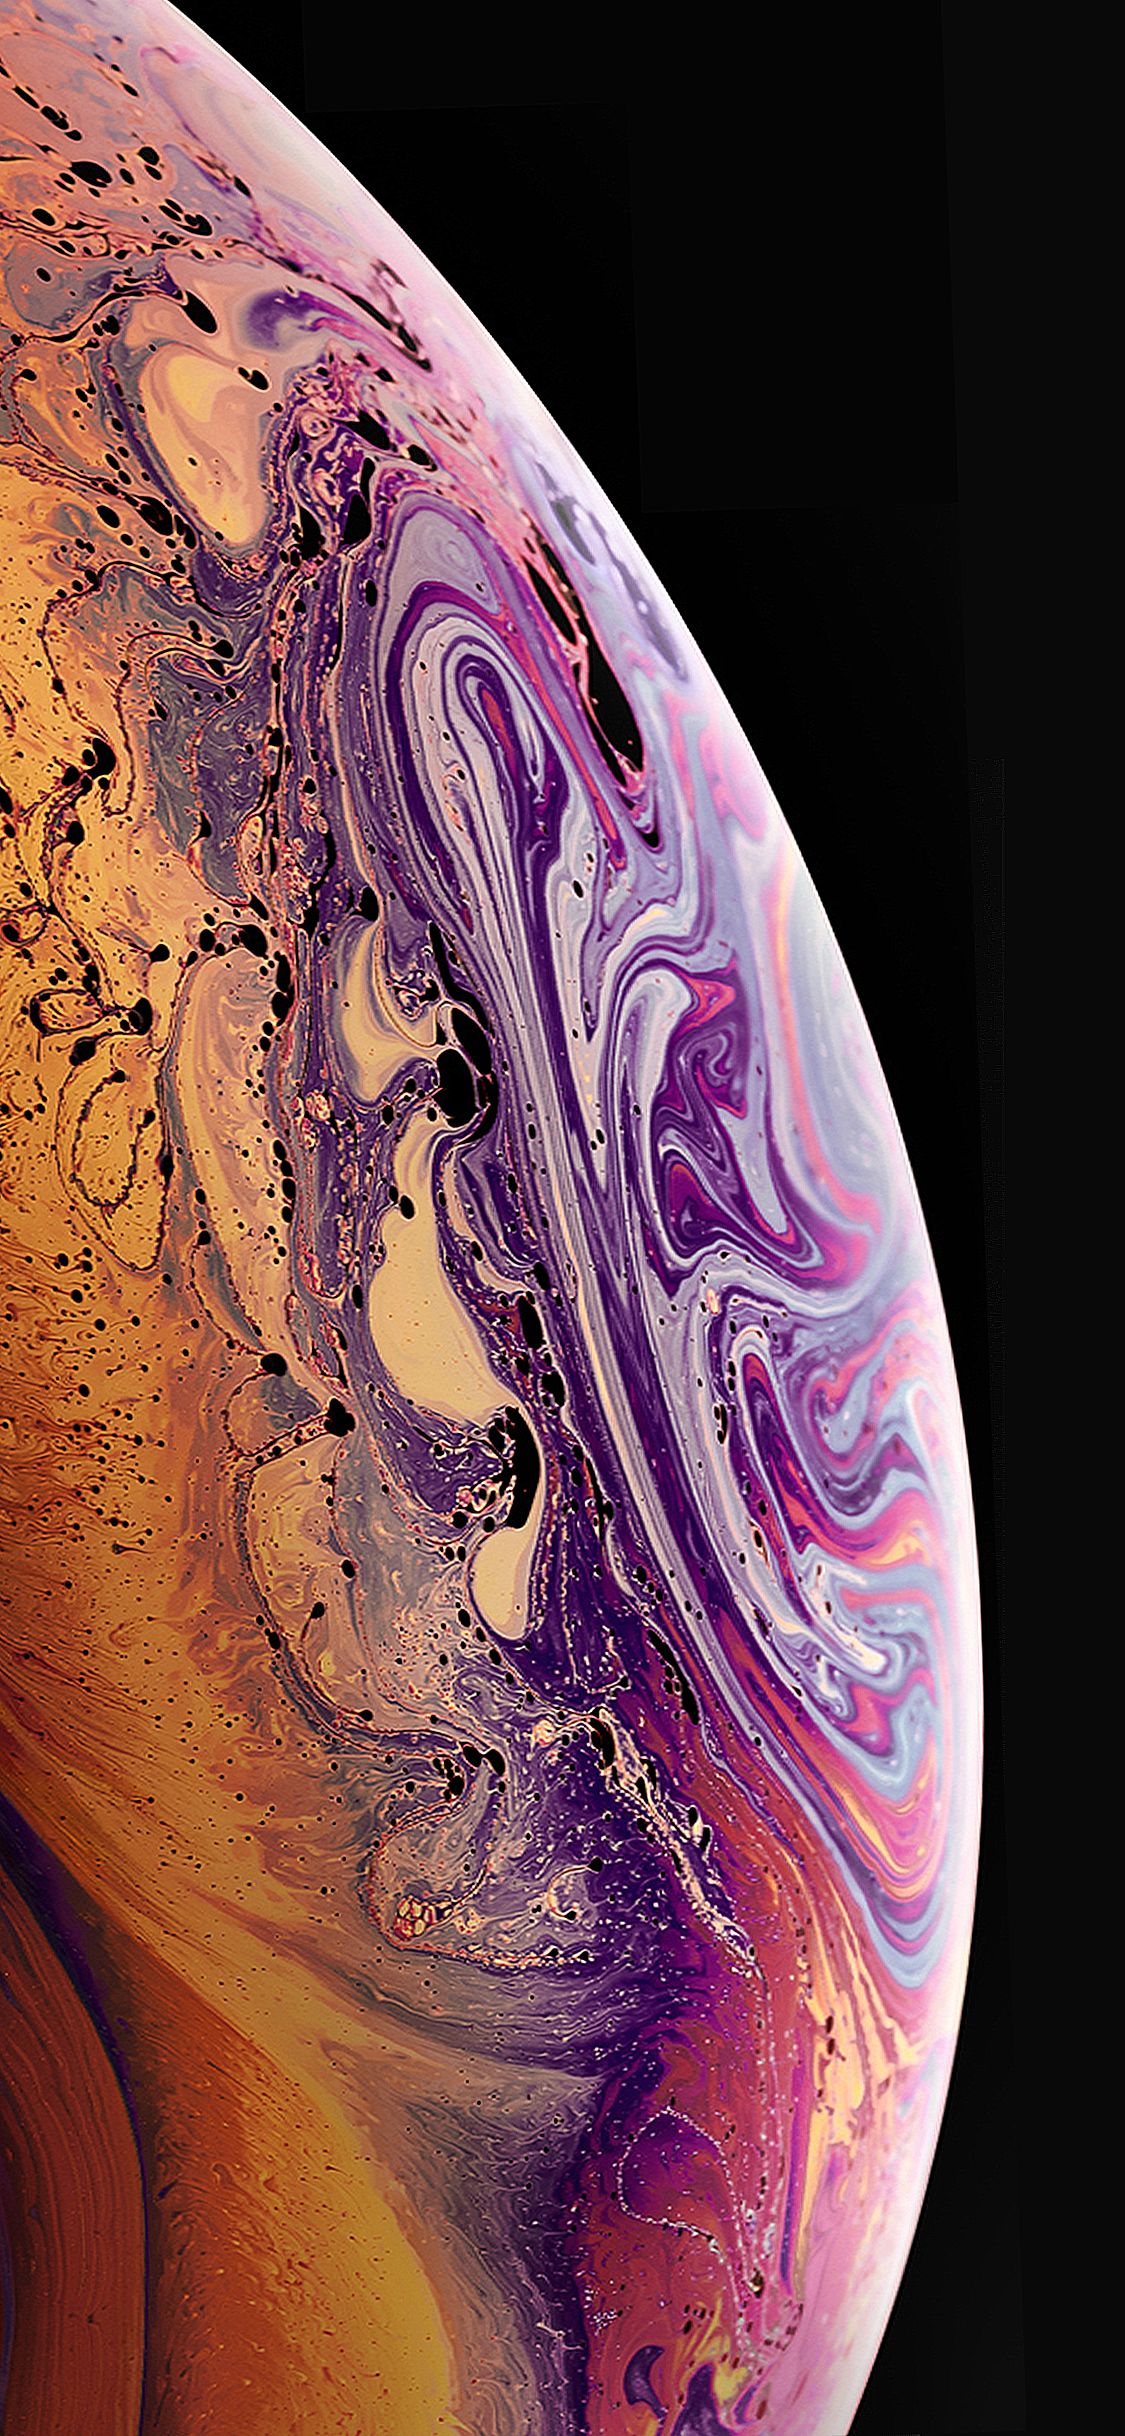 55 Iphone Xs Full Hd Wallpapers On Wallpapersafari